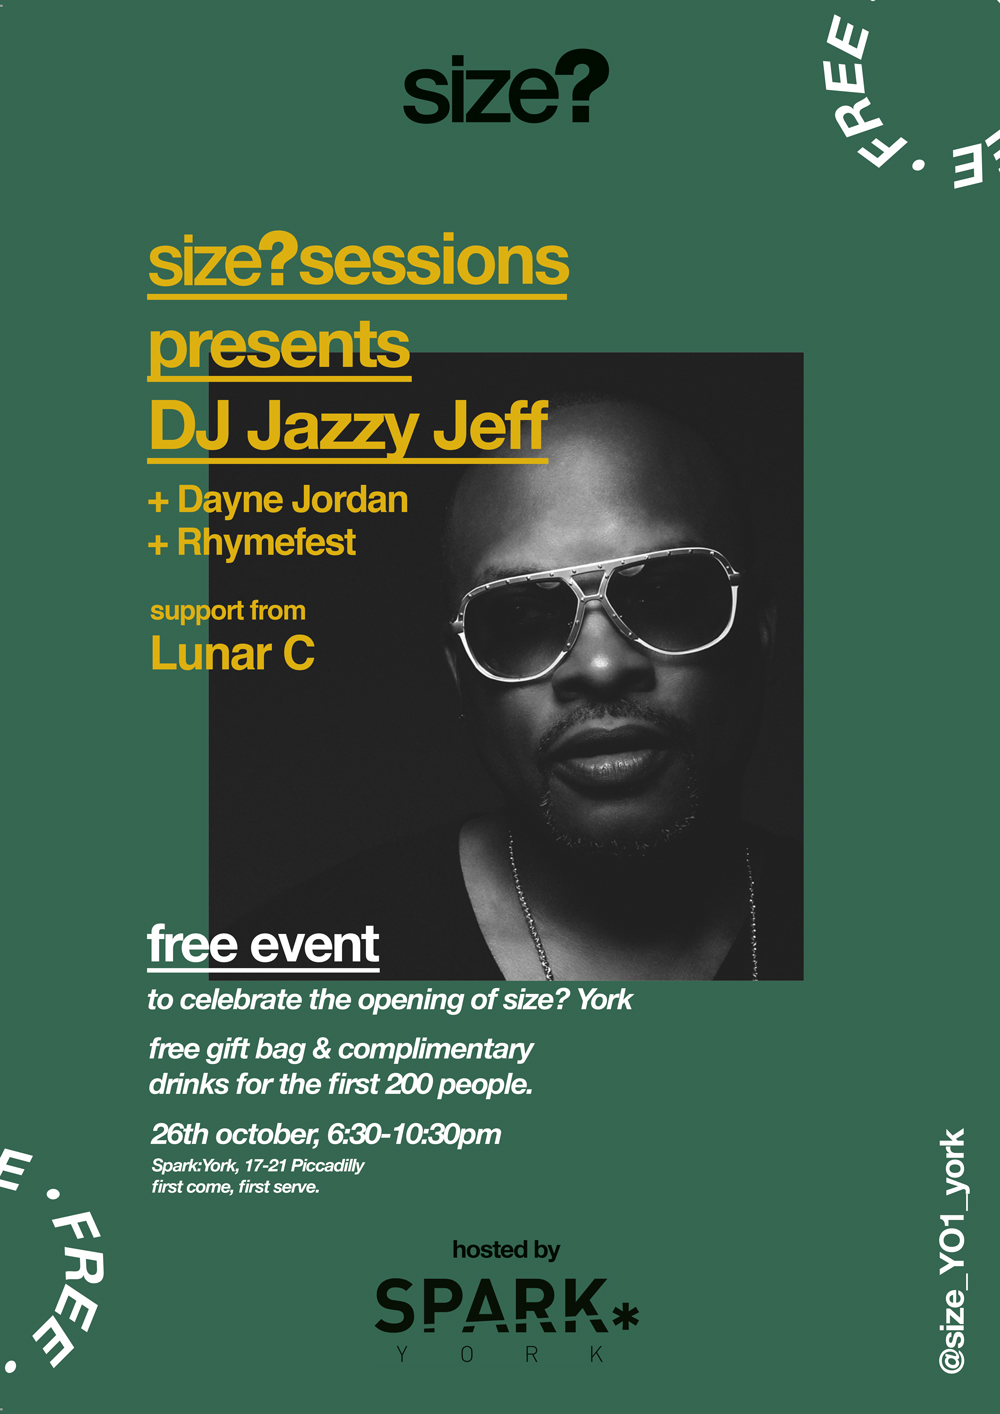 size? sessions presents DJ Jazzy Jeff